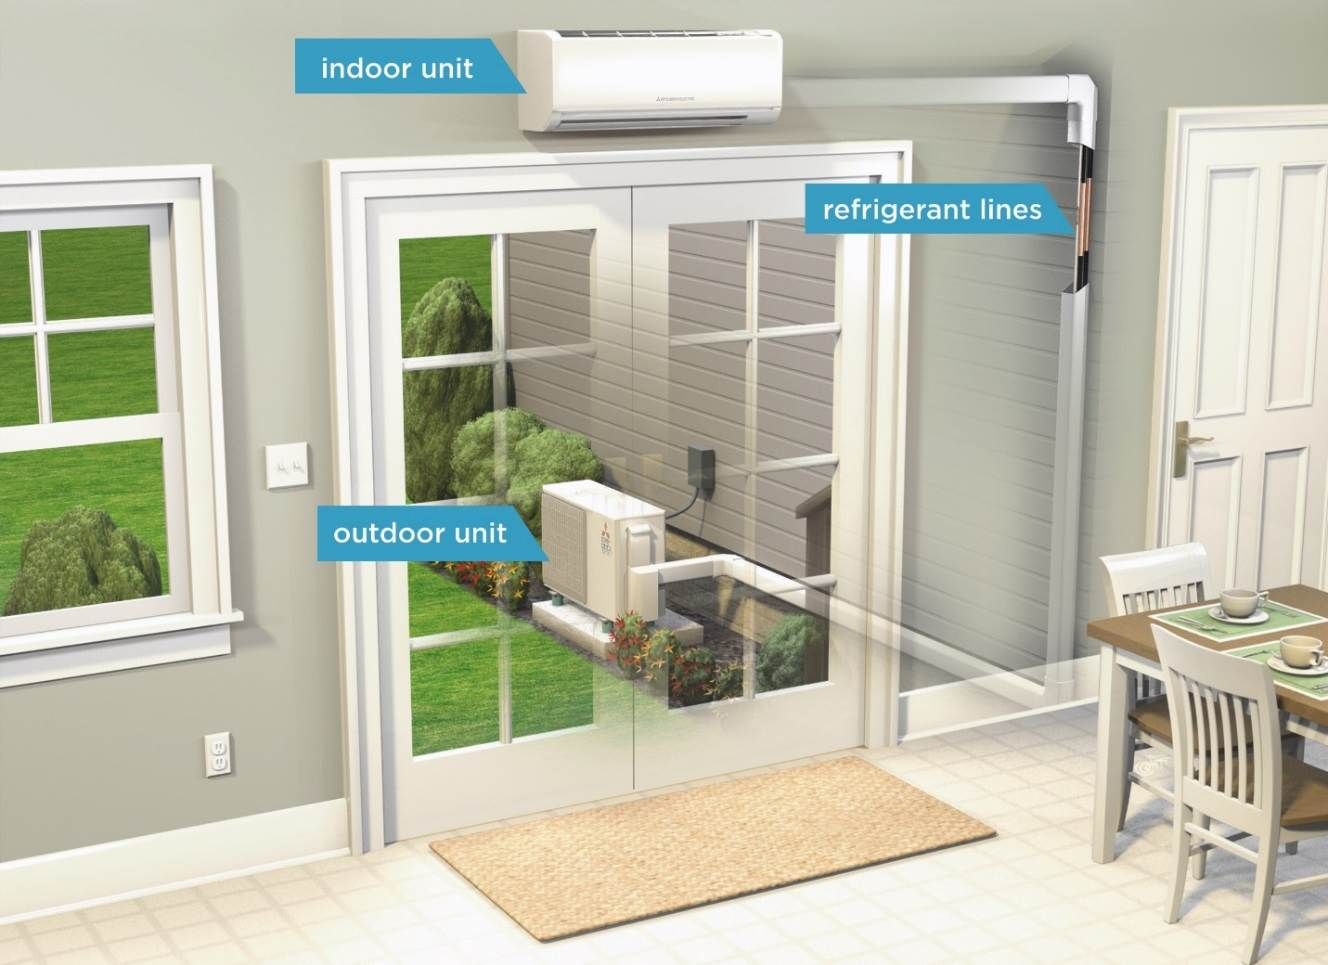 Lovely Ductless Mini Split Heat Pump   Will This Work With Radiant Heat To Fulfill  All Of